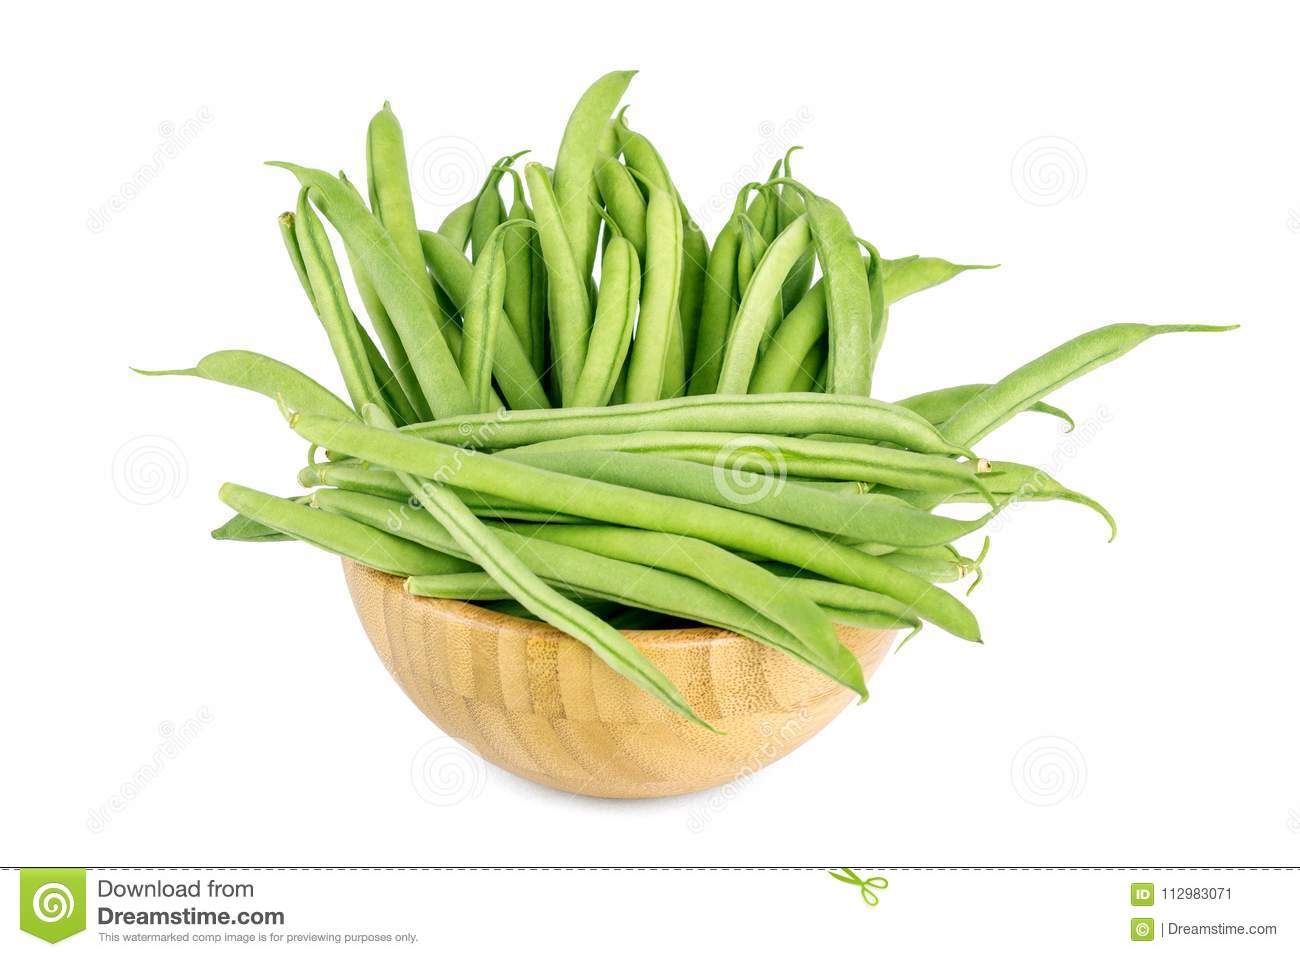 Green beans isolated in wooden bowl on a white background.